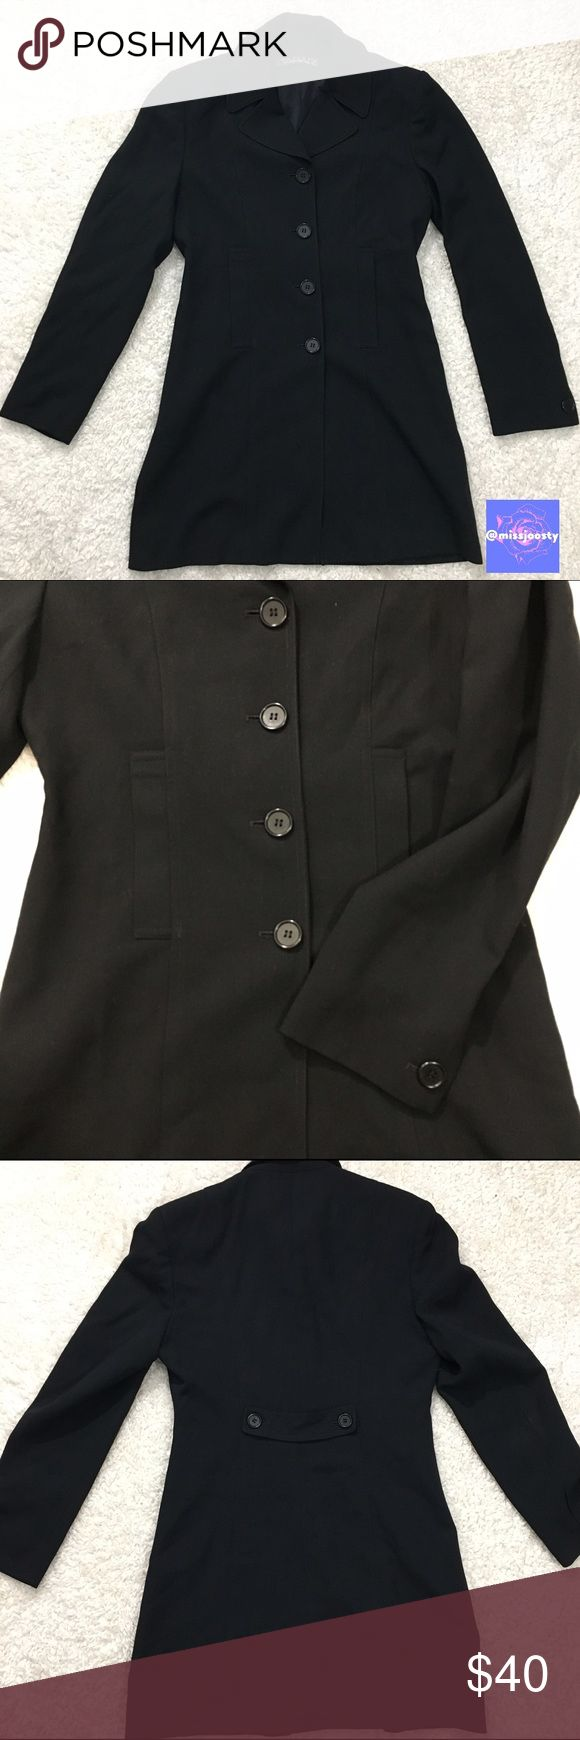 Tahari Black Suit Jacket Tahari jacket is gently used without flaws. Material provided in photo, please let me know if you have any questions-- more than happy to answer them for you! Bundle and save 15%💕✨ Tahari Jackets & Coats